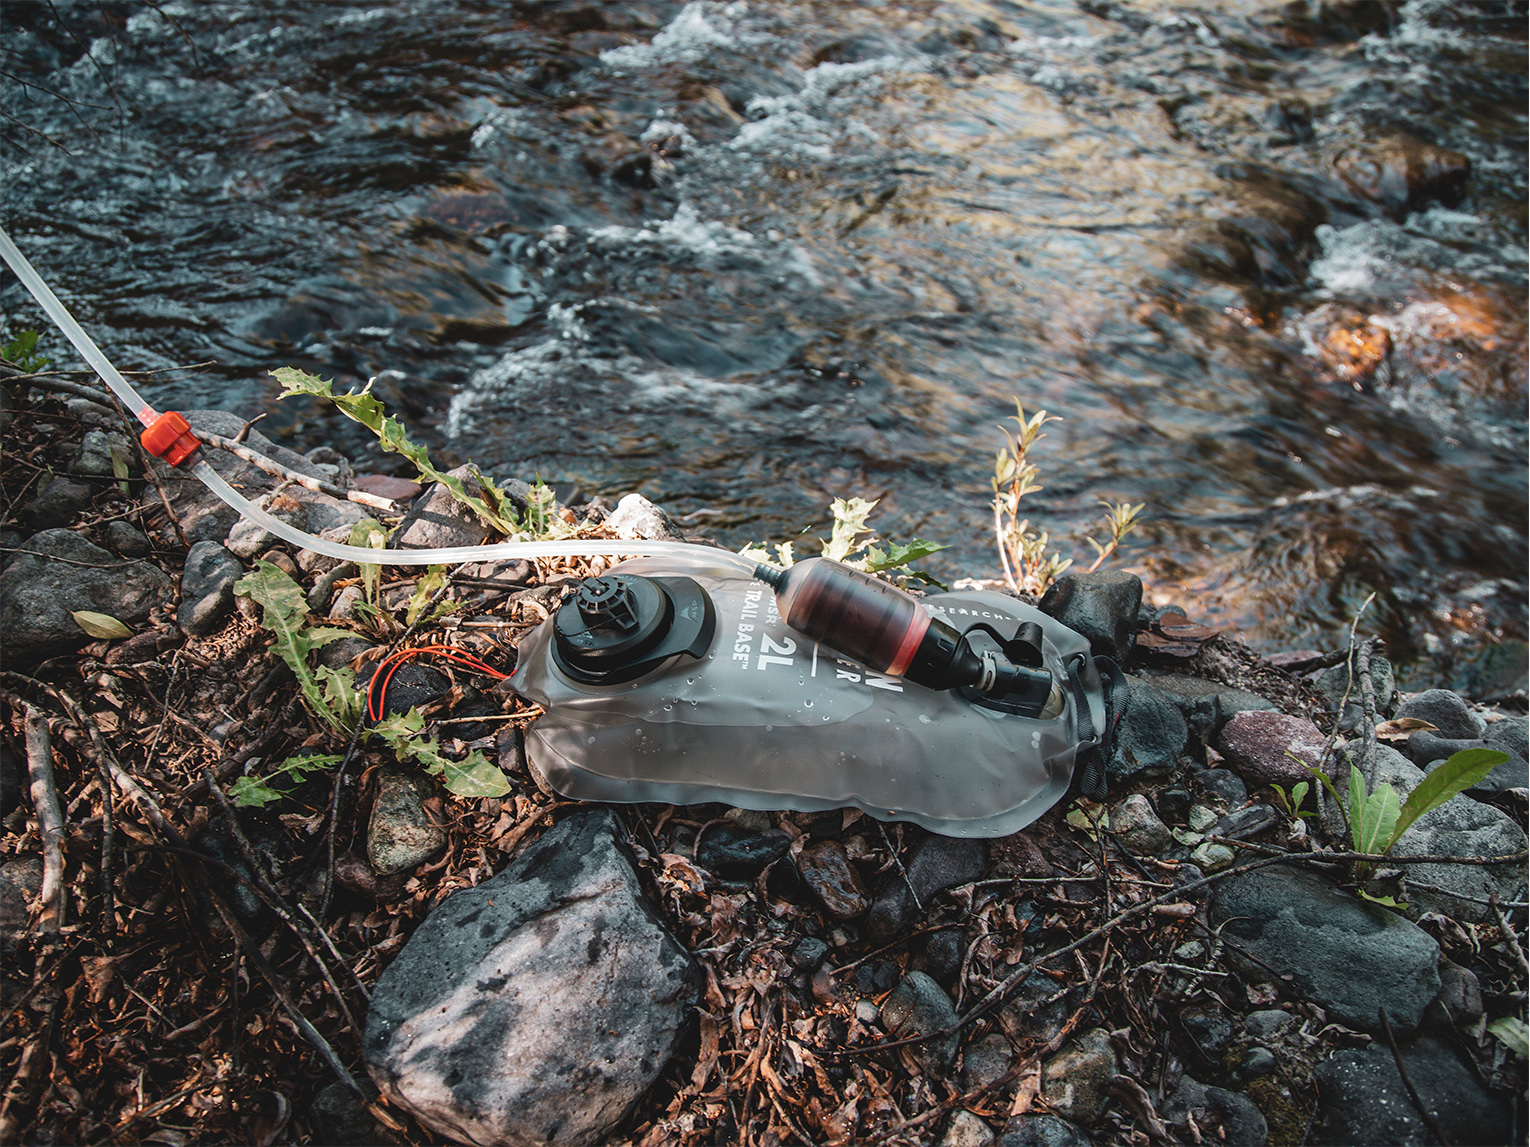 MSR 2L Trail Base Water Filter kit on ground by river